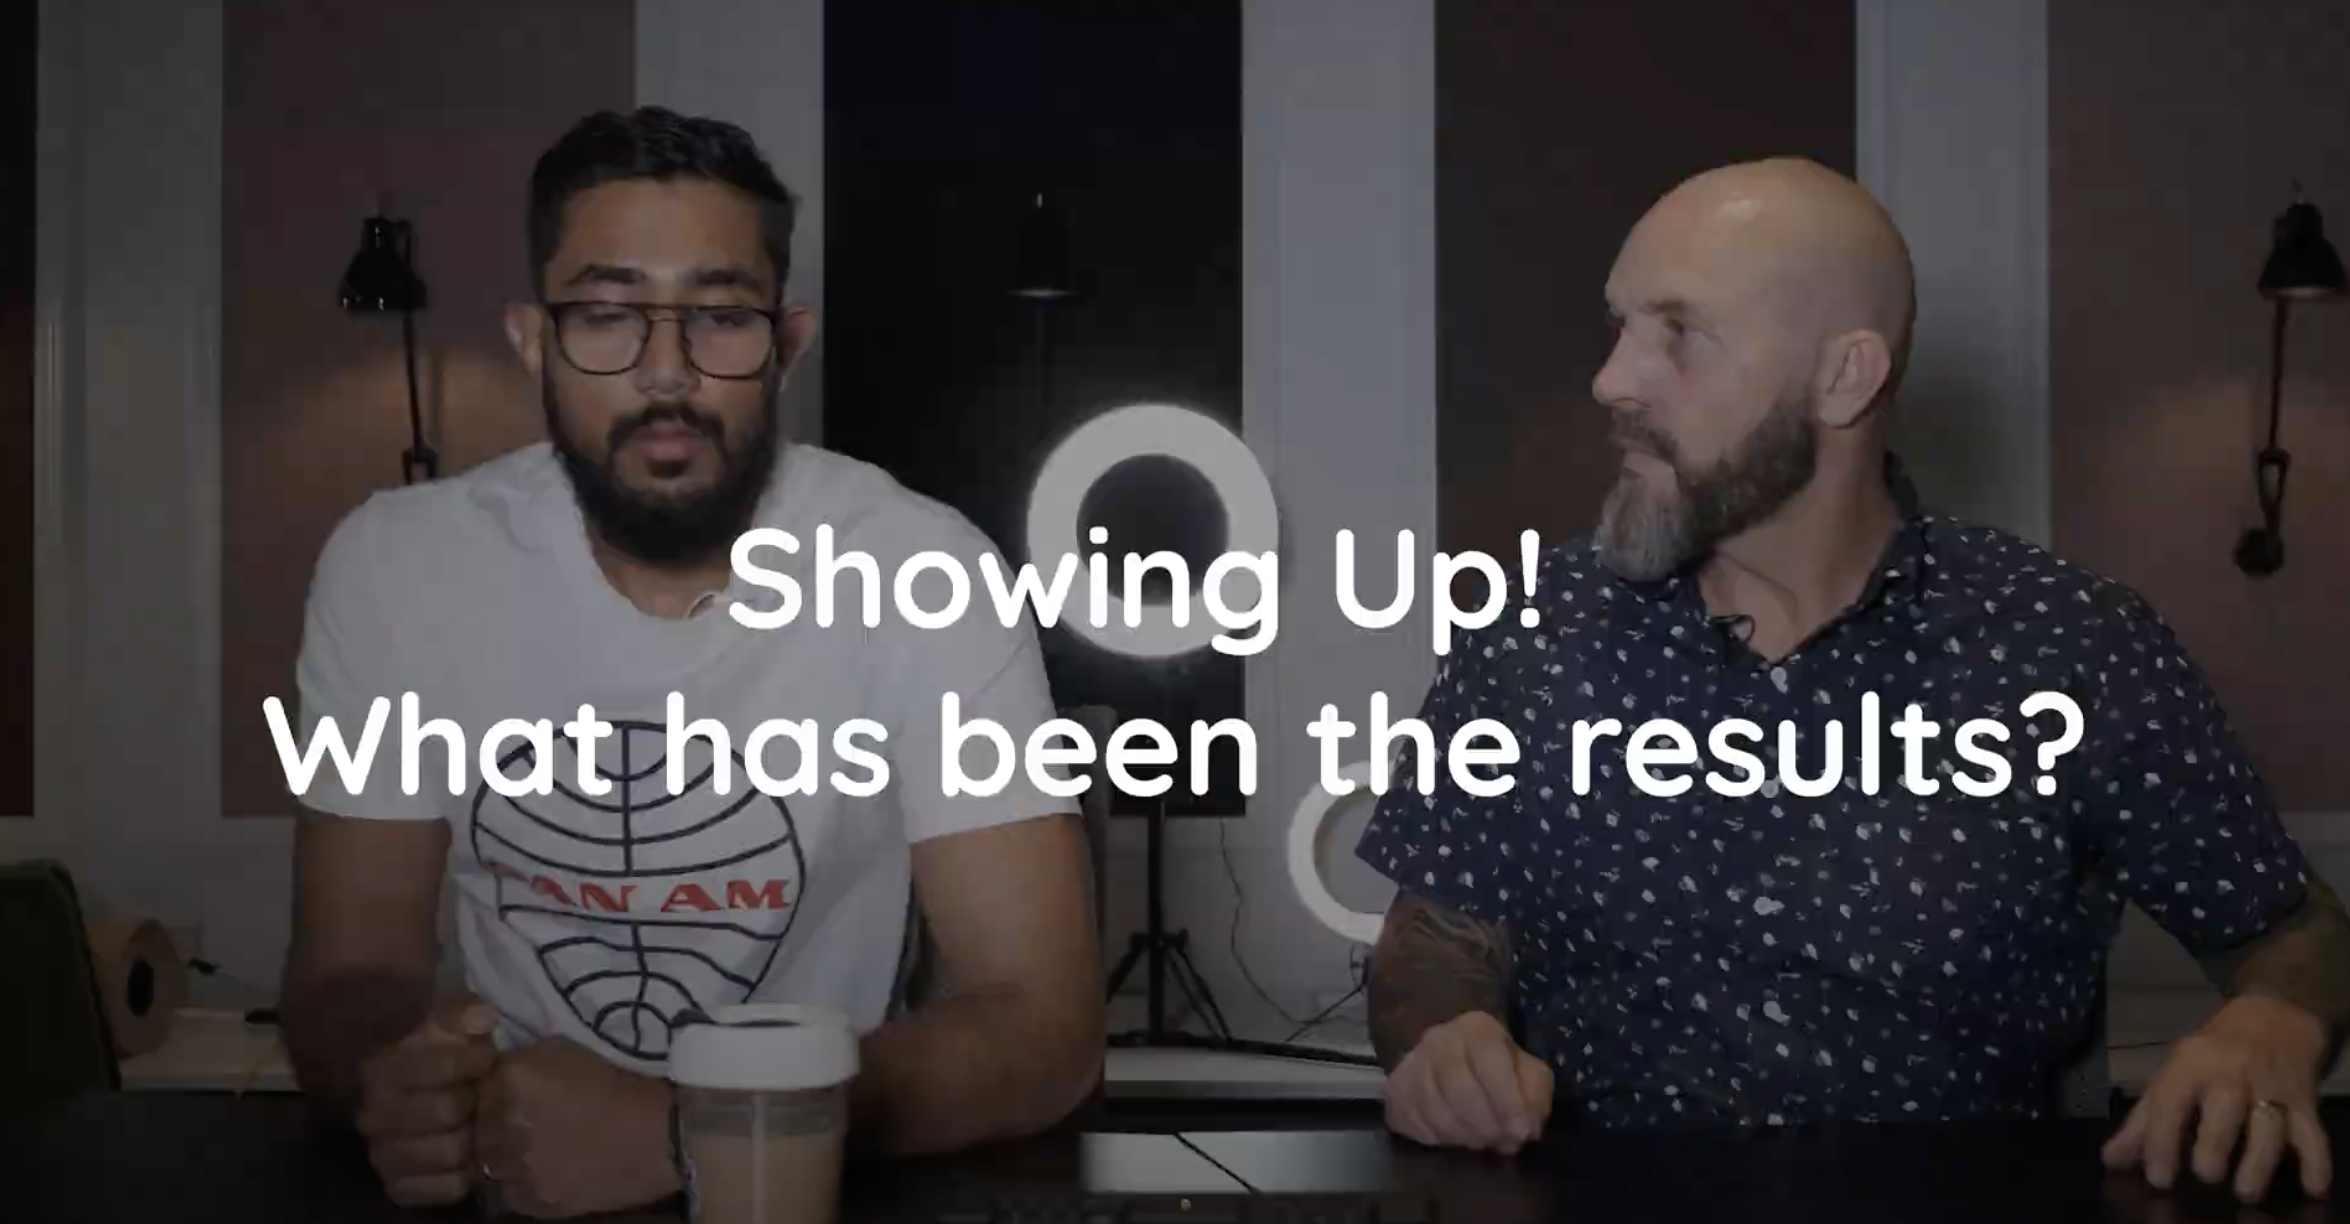 Showing Up! Episode 8 Our Results Thus Far